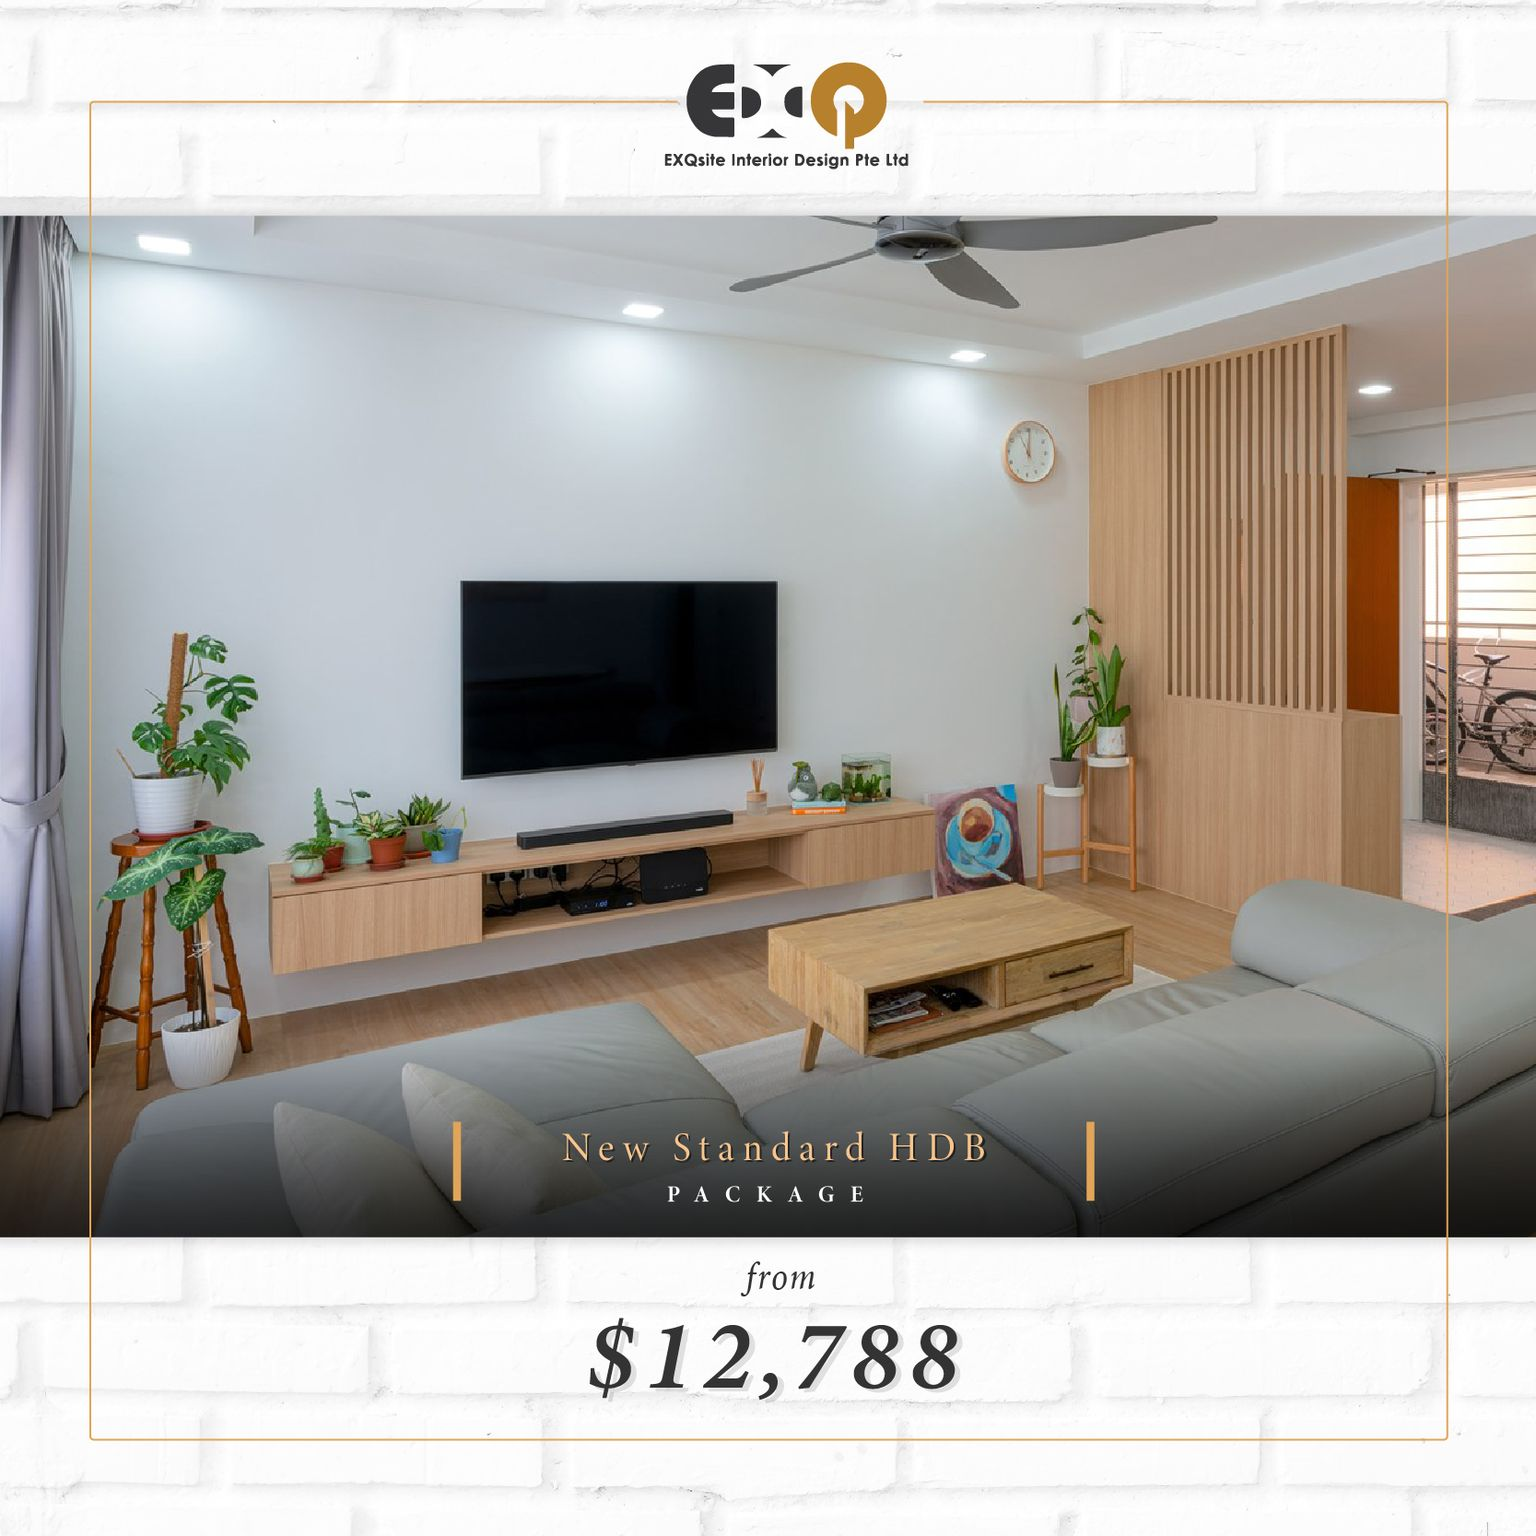 Exclusive Packages by Exqsite Interior Design